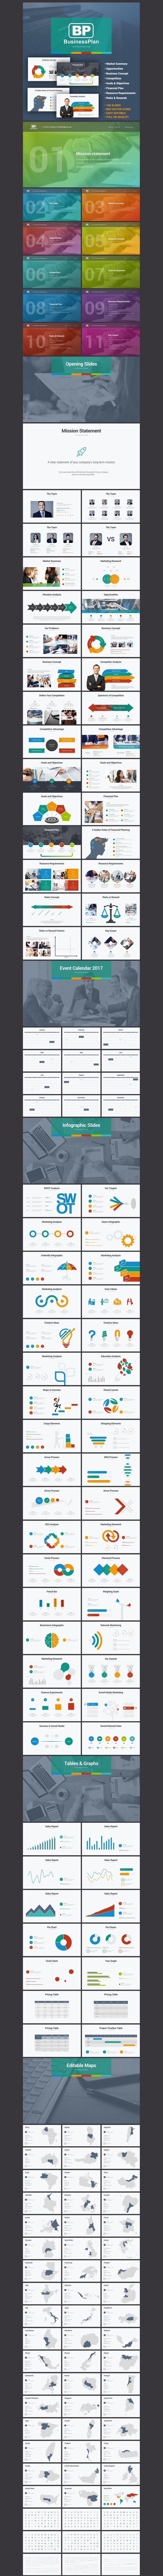 73 best layout images on pinterest editorial design graph